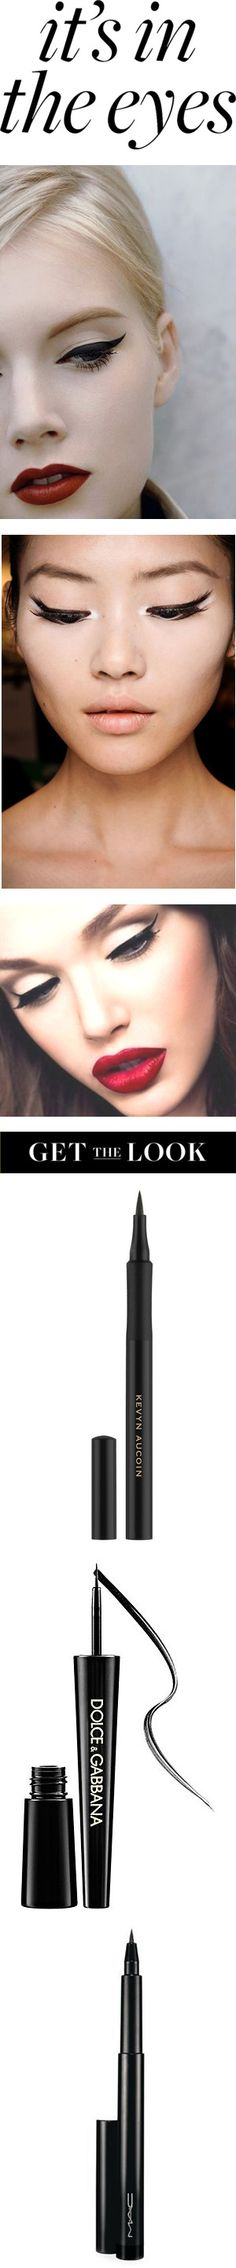 """Get The Look: The Wing"" by nadia on Polyvore"